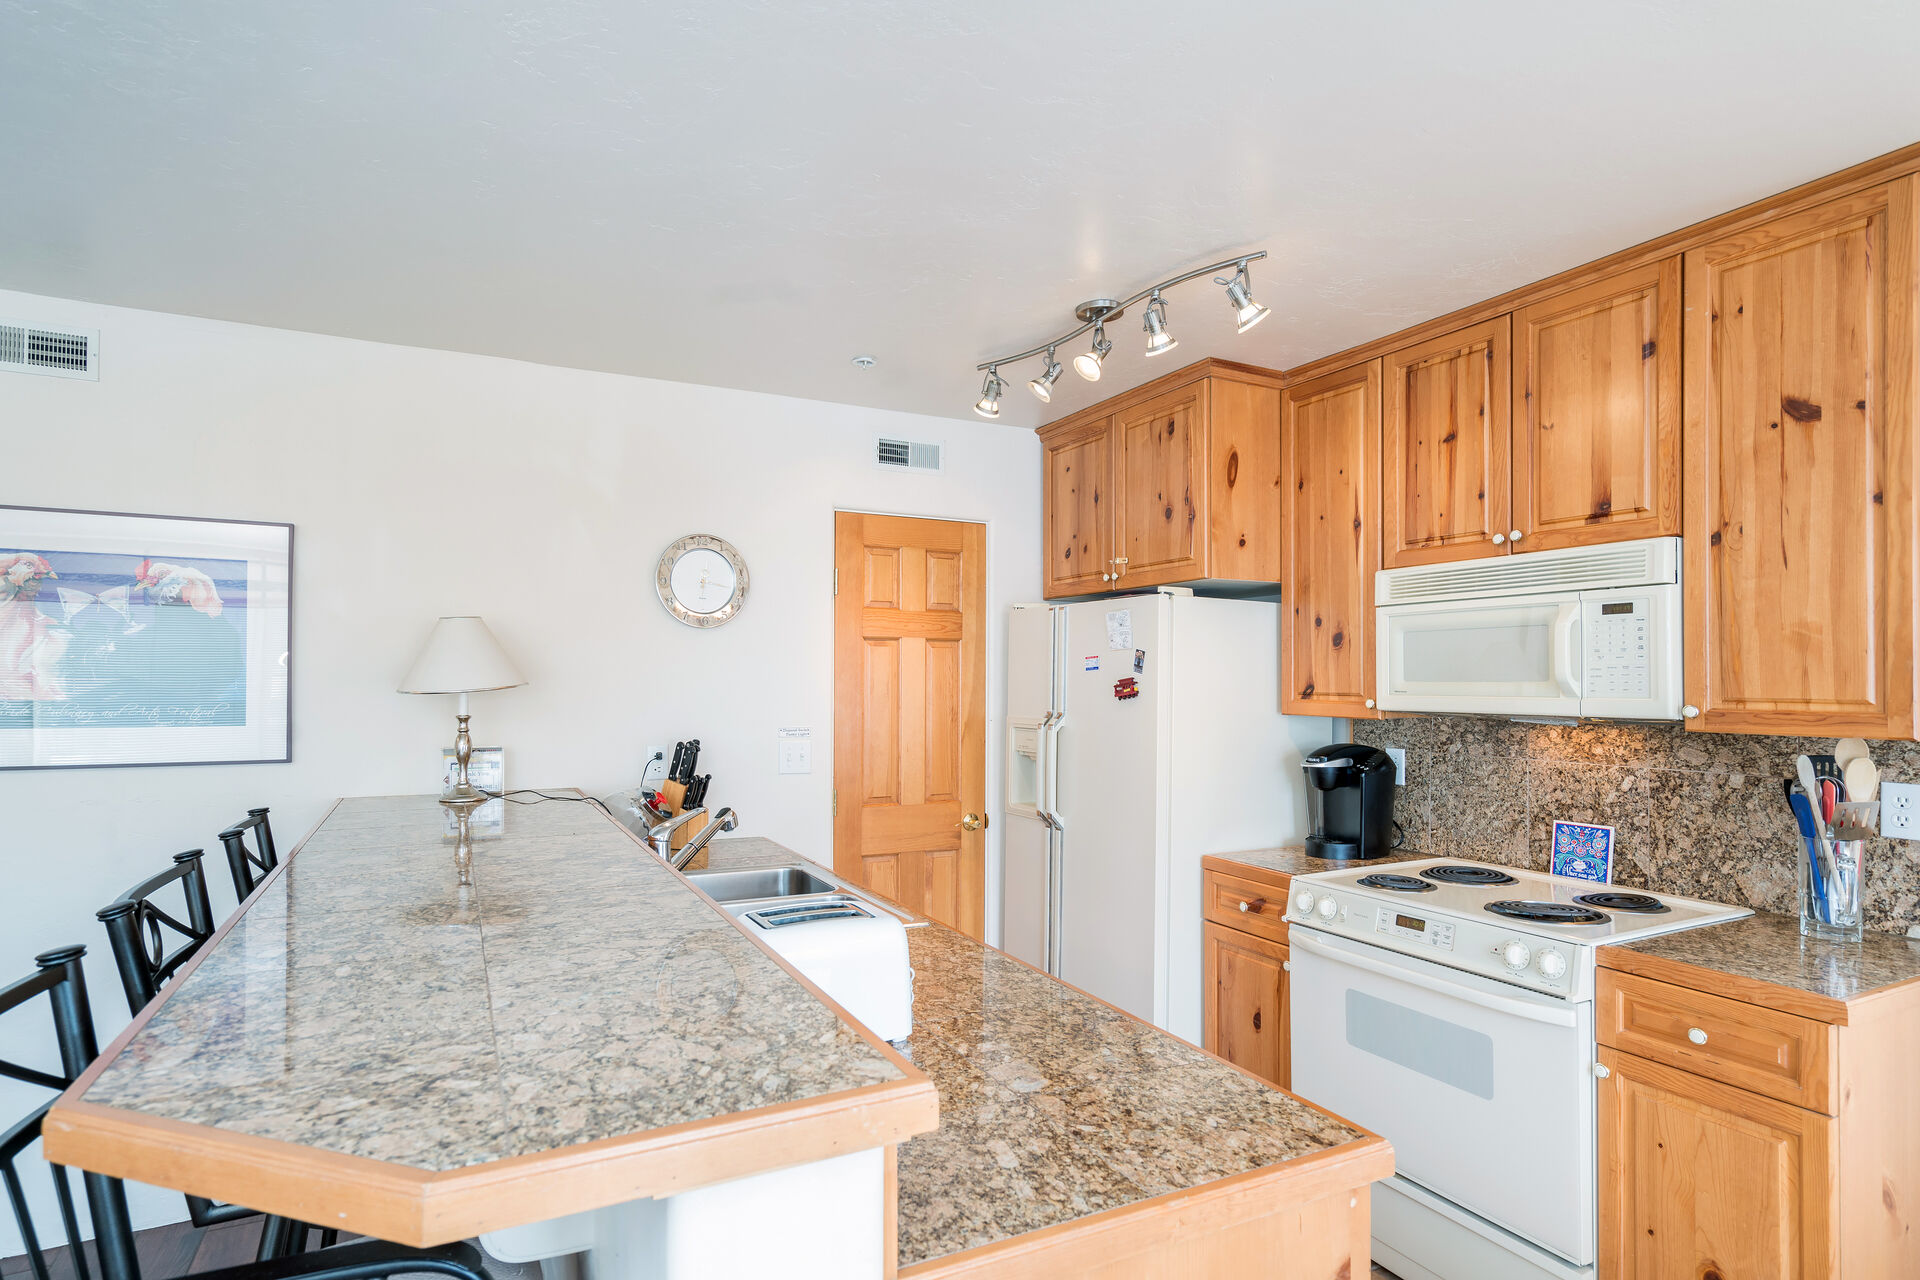 Full Kitchen with Wooden Cabinetry at Outlaws #7A